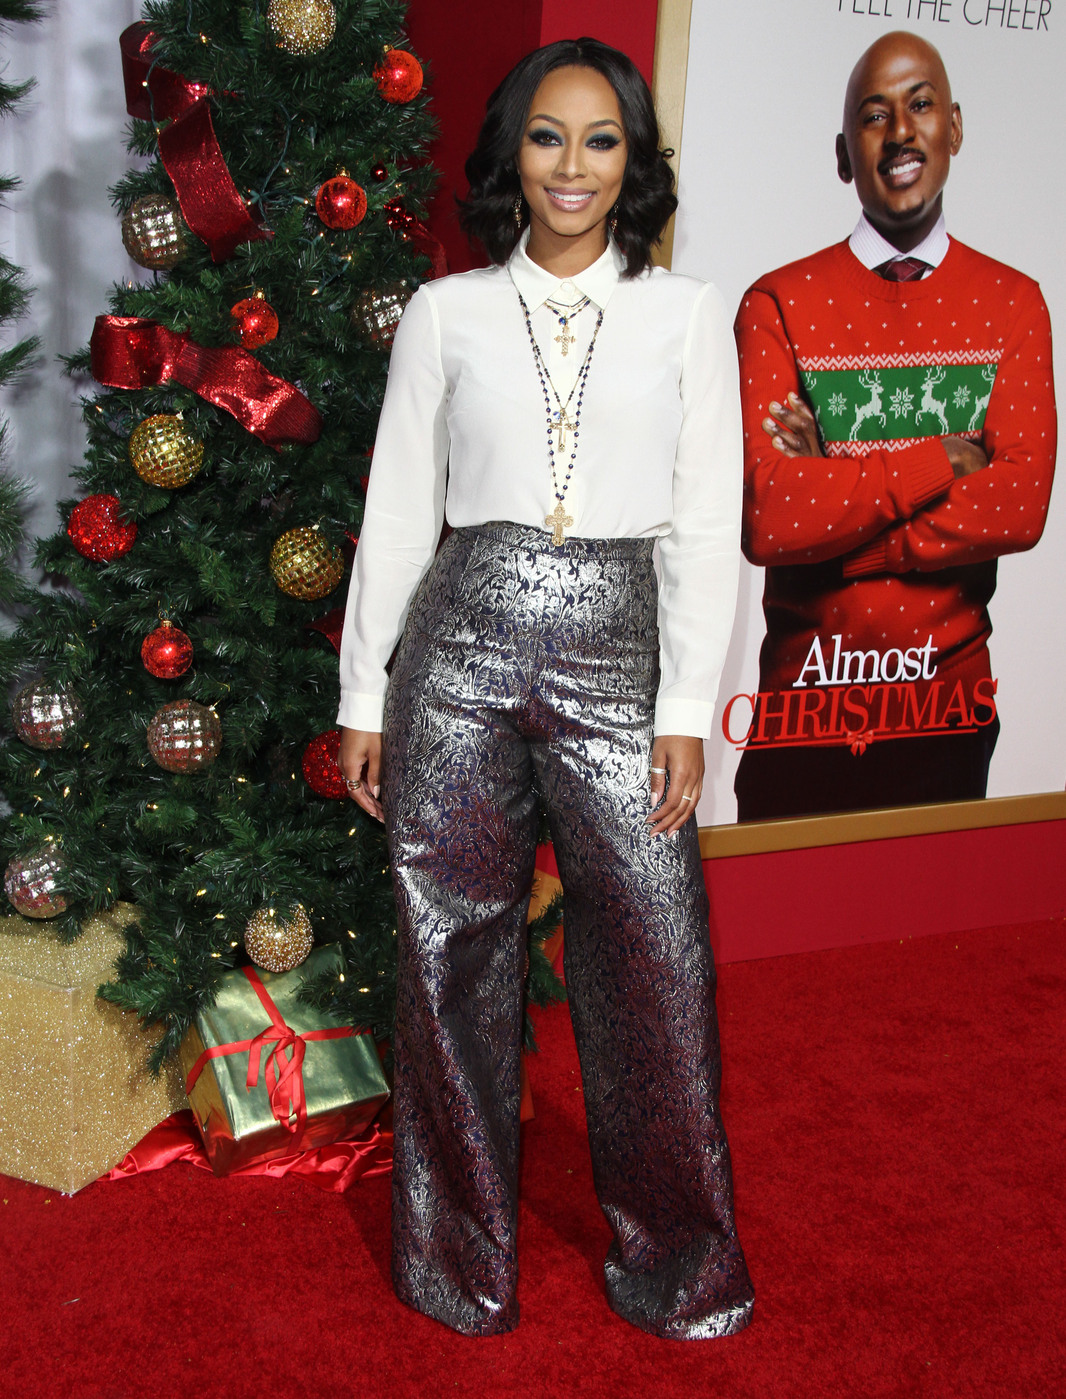 Almost Christmas Keri Hilson.Keri Hilson Attends The Premiere Of Almost Christmas In